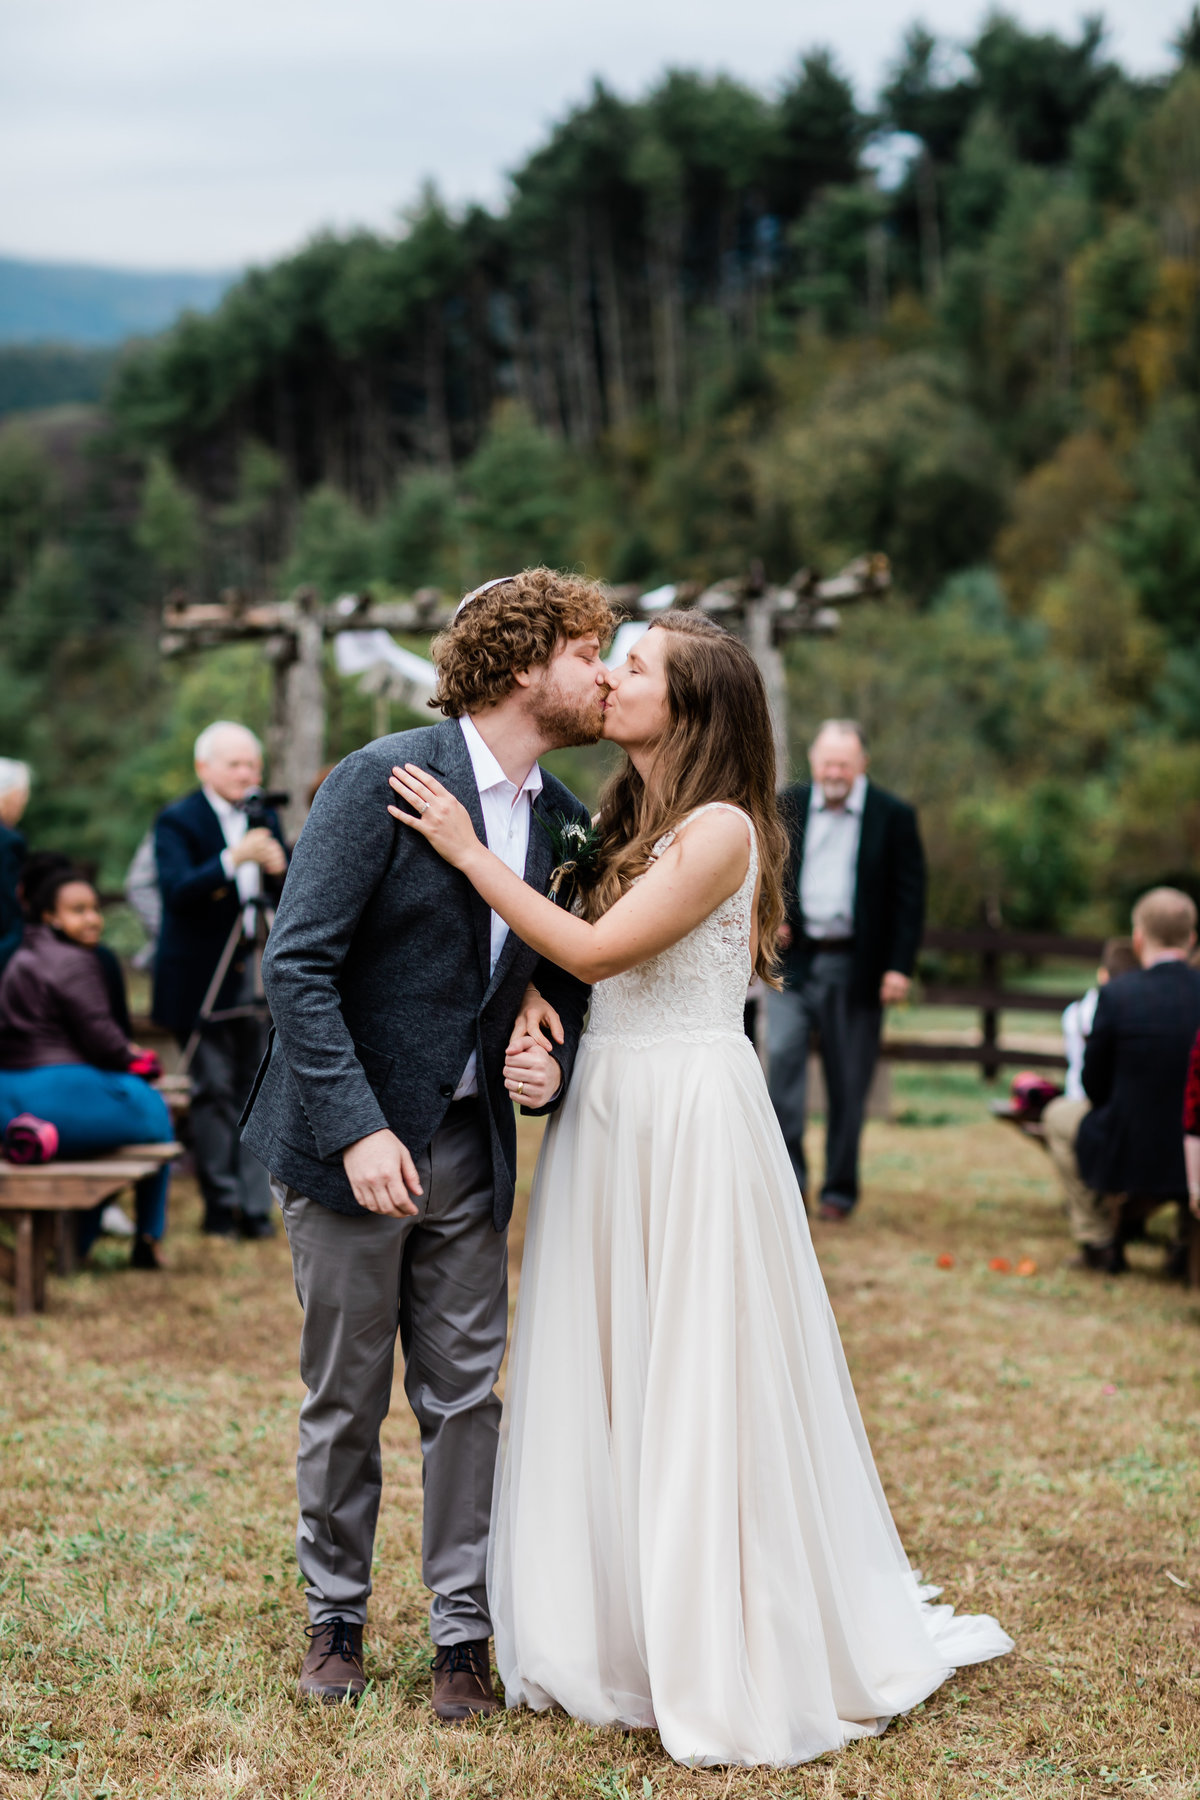 Danielle-Defayette-Photography-Mountain-Laurel-Farm-Wedding-Virginia-271